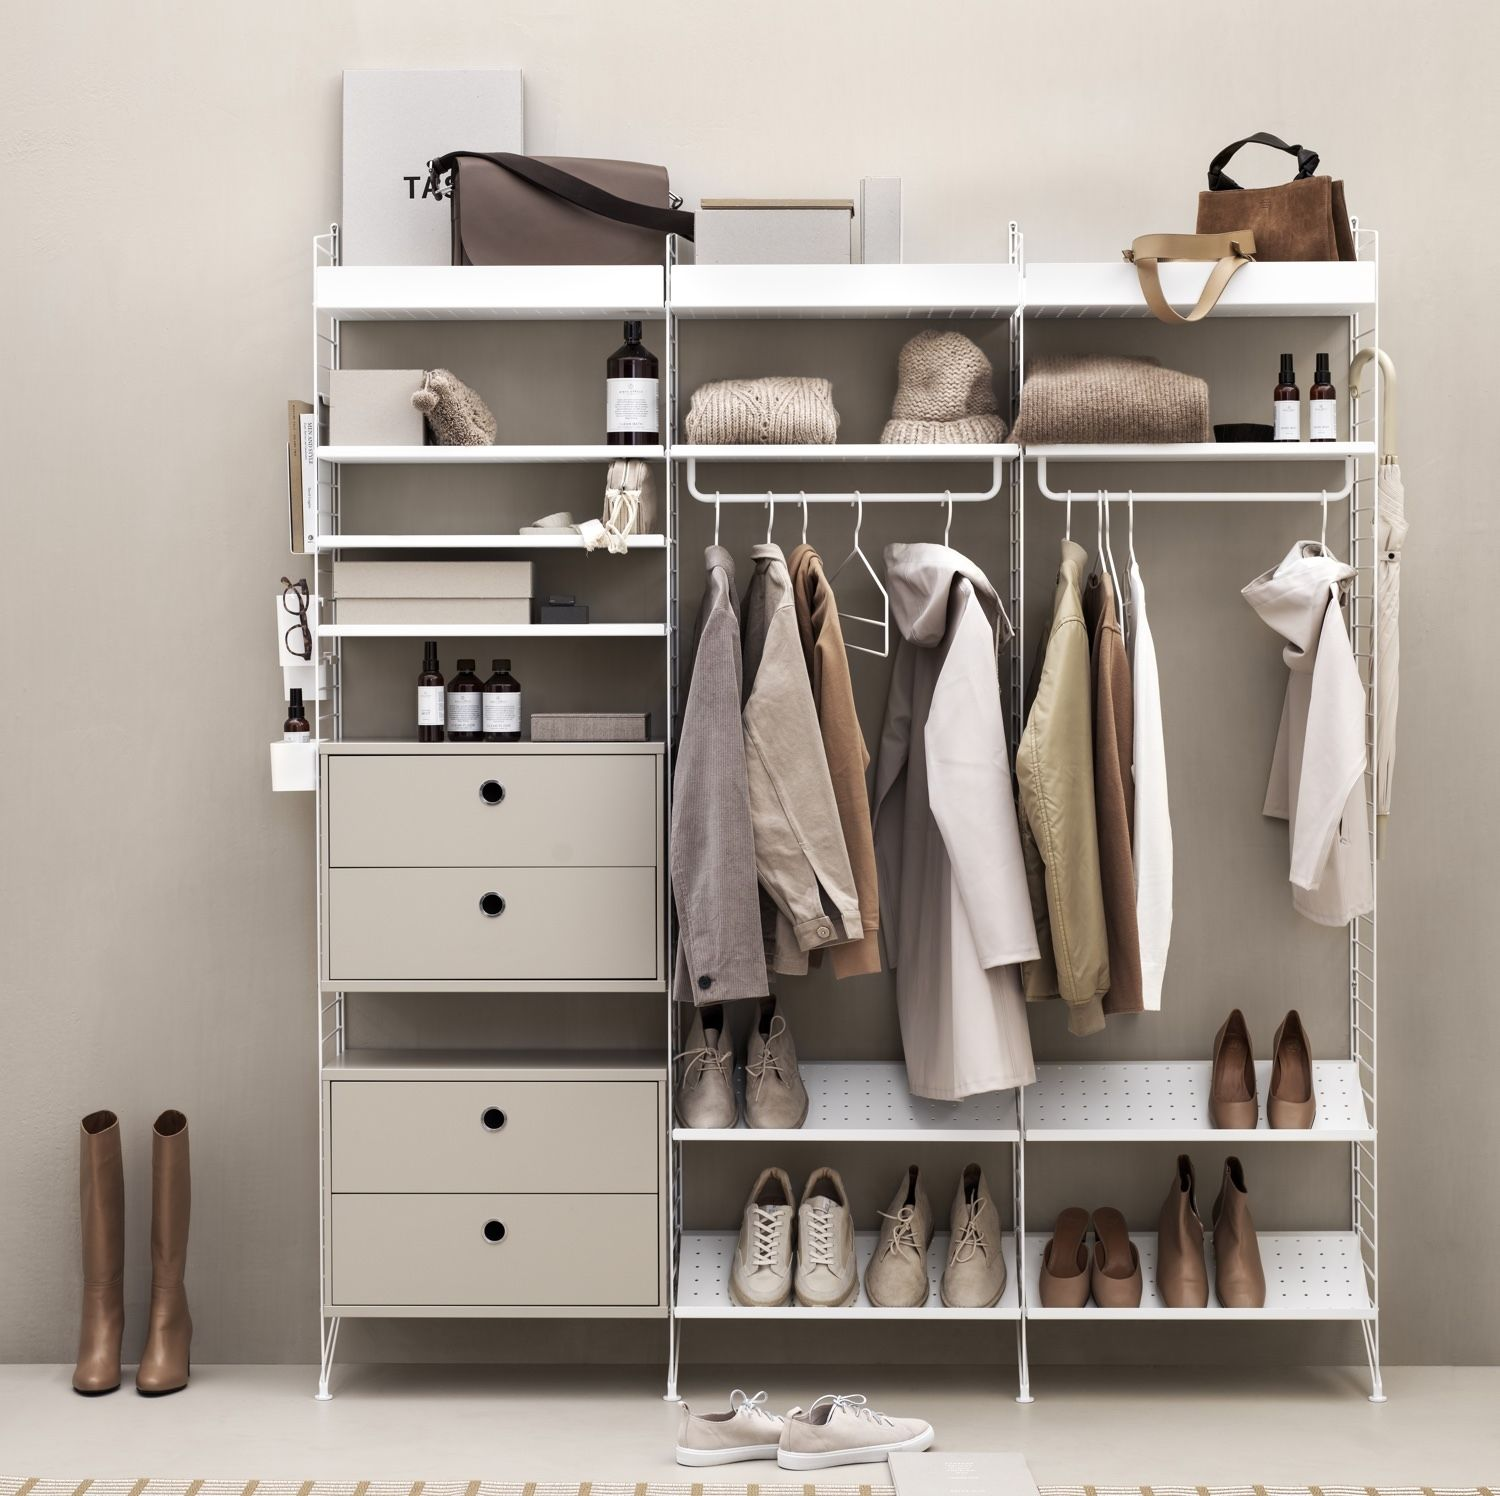 string shelving coat hangers in clothes storage system in ash and white